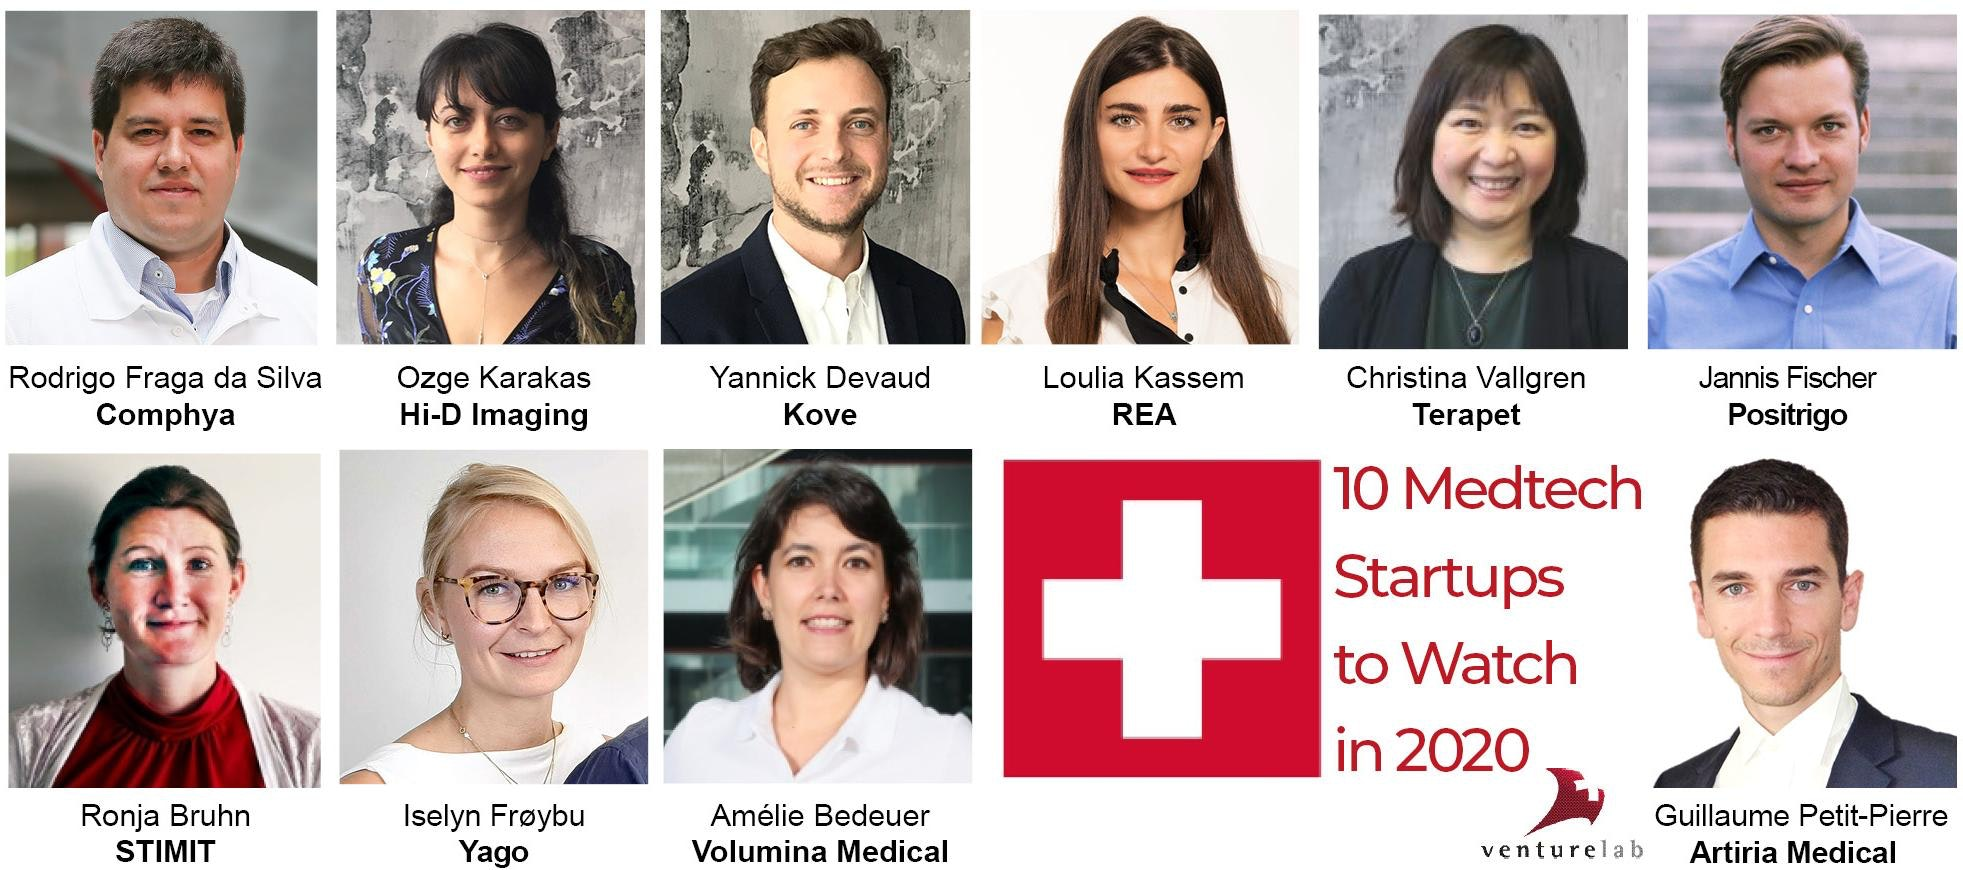 Today Terapet SA is featured as one of the Top10 Swiss MedTech rising stars by Venturelab